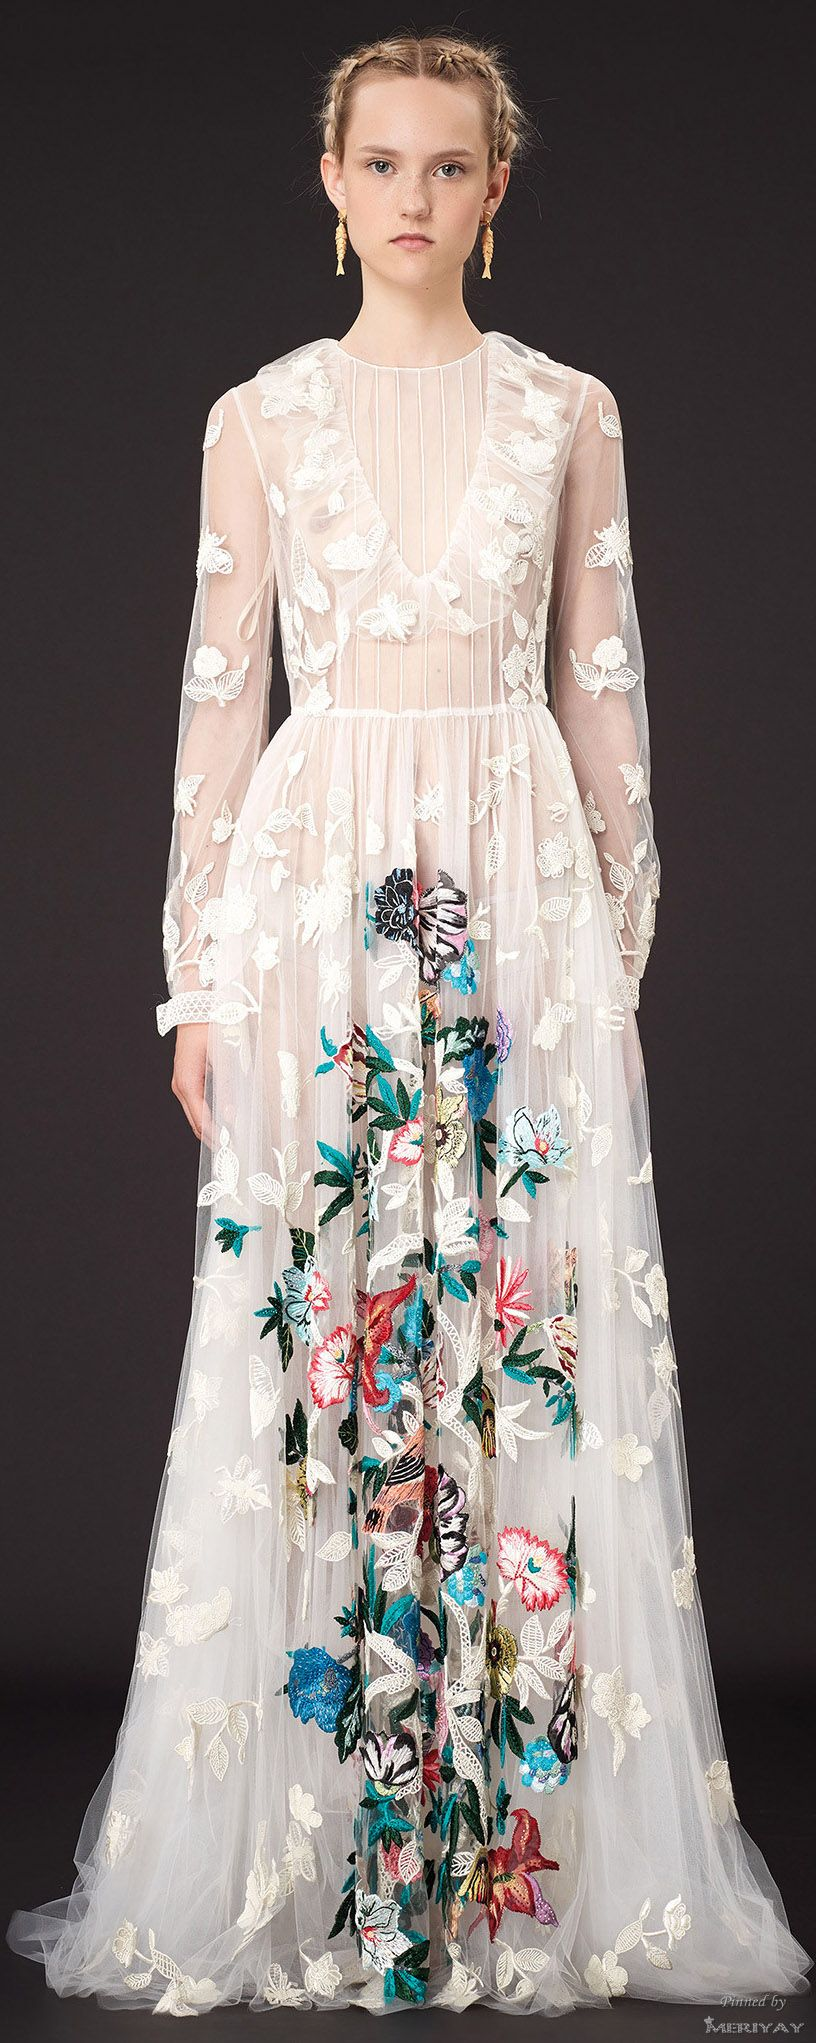 Valentino but my praise is for the team that made this dress what